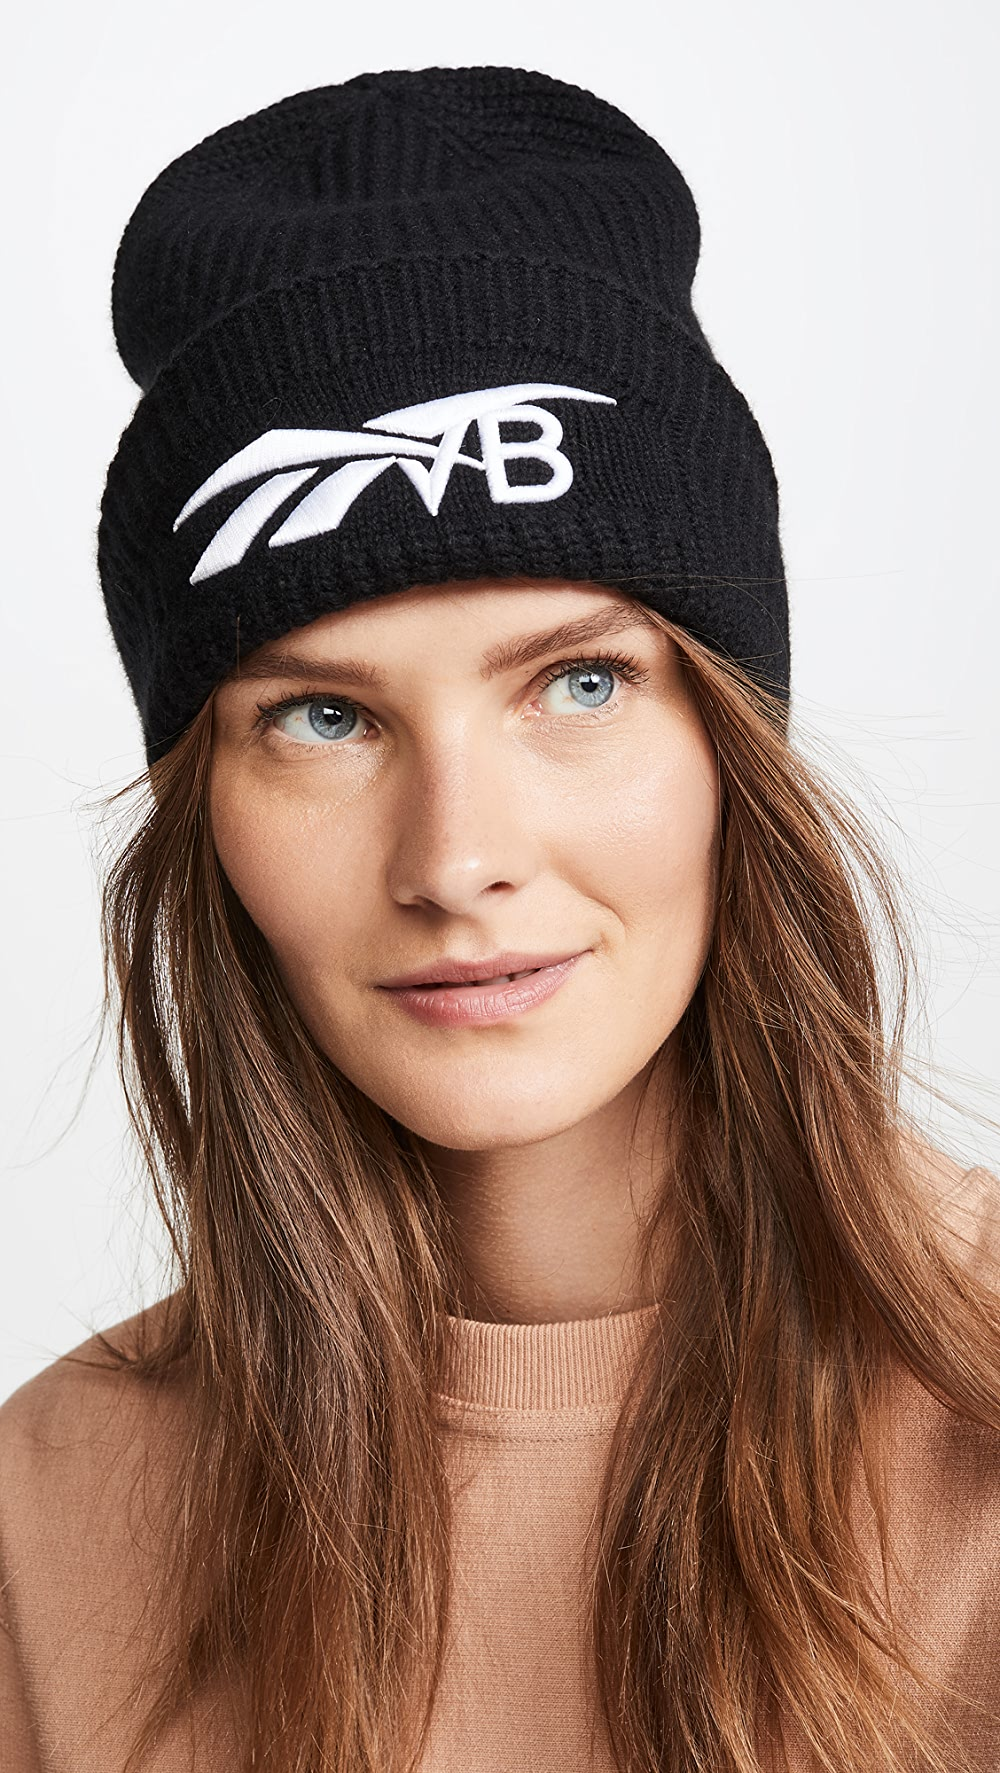 Enthusiastic Reebok X Victoria Beckham - Rbk Vb Beanie Invigorating Blood Circulation And Stopping Pains